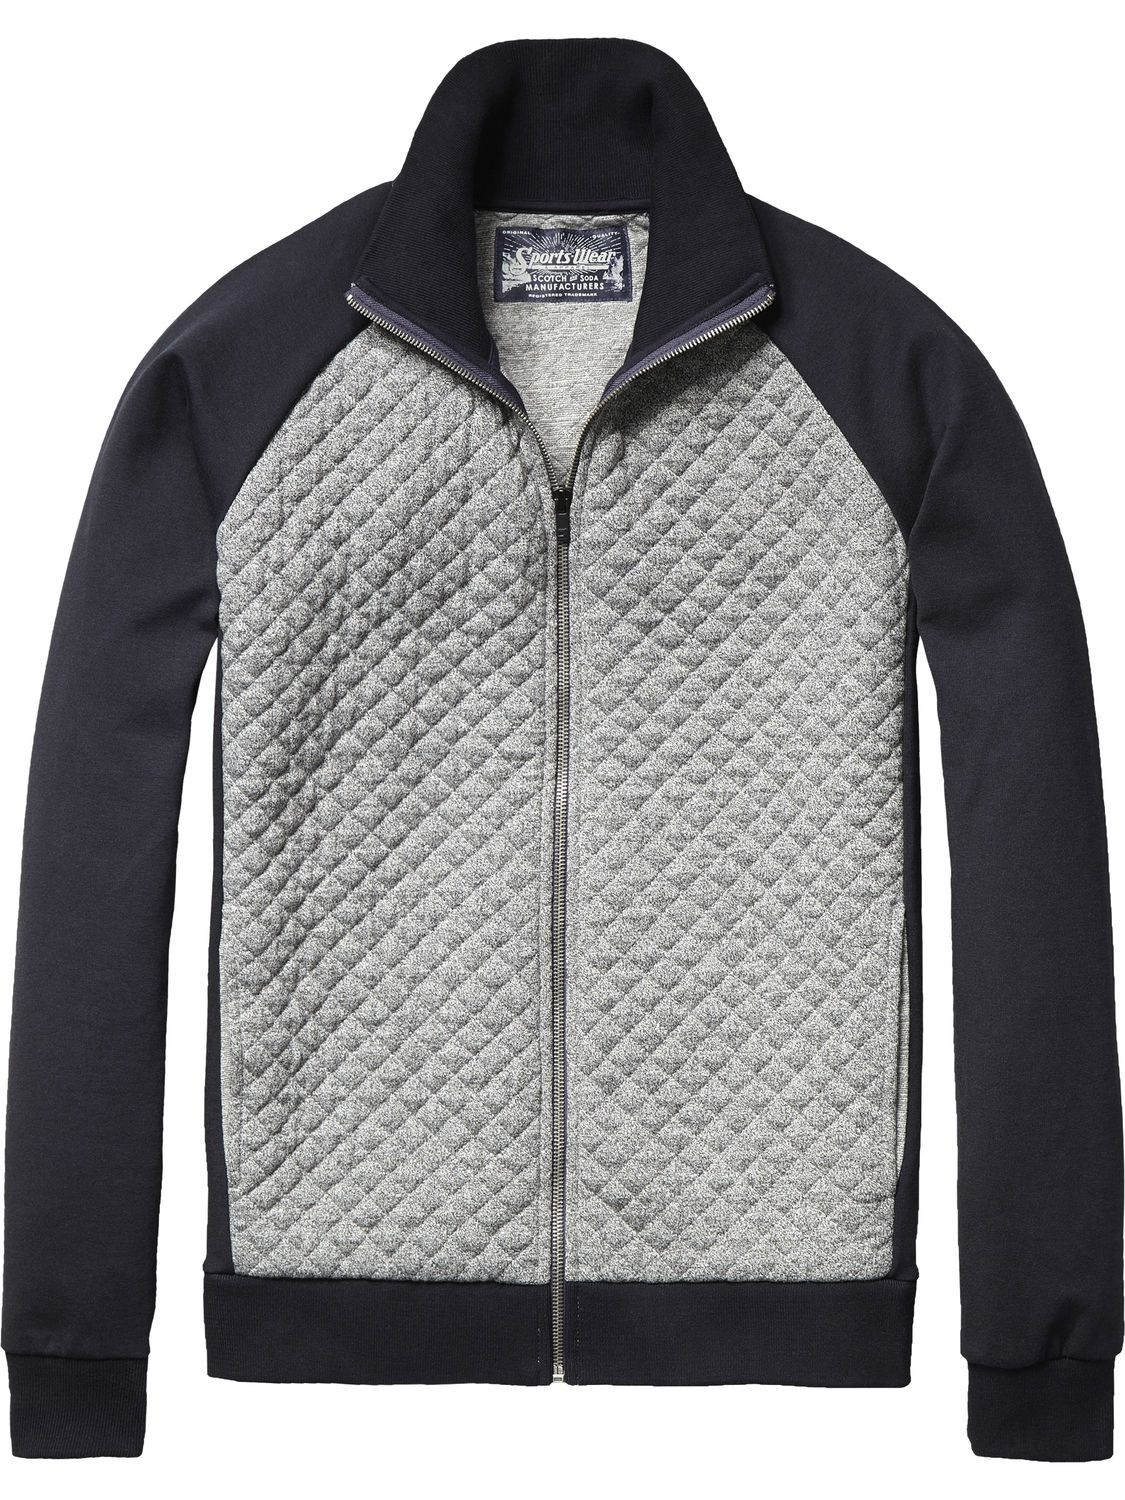 f472c7ac5ea1d Quilted Track Jacket   Jackets   Coats   Men s Clothing at Scotch   Soda